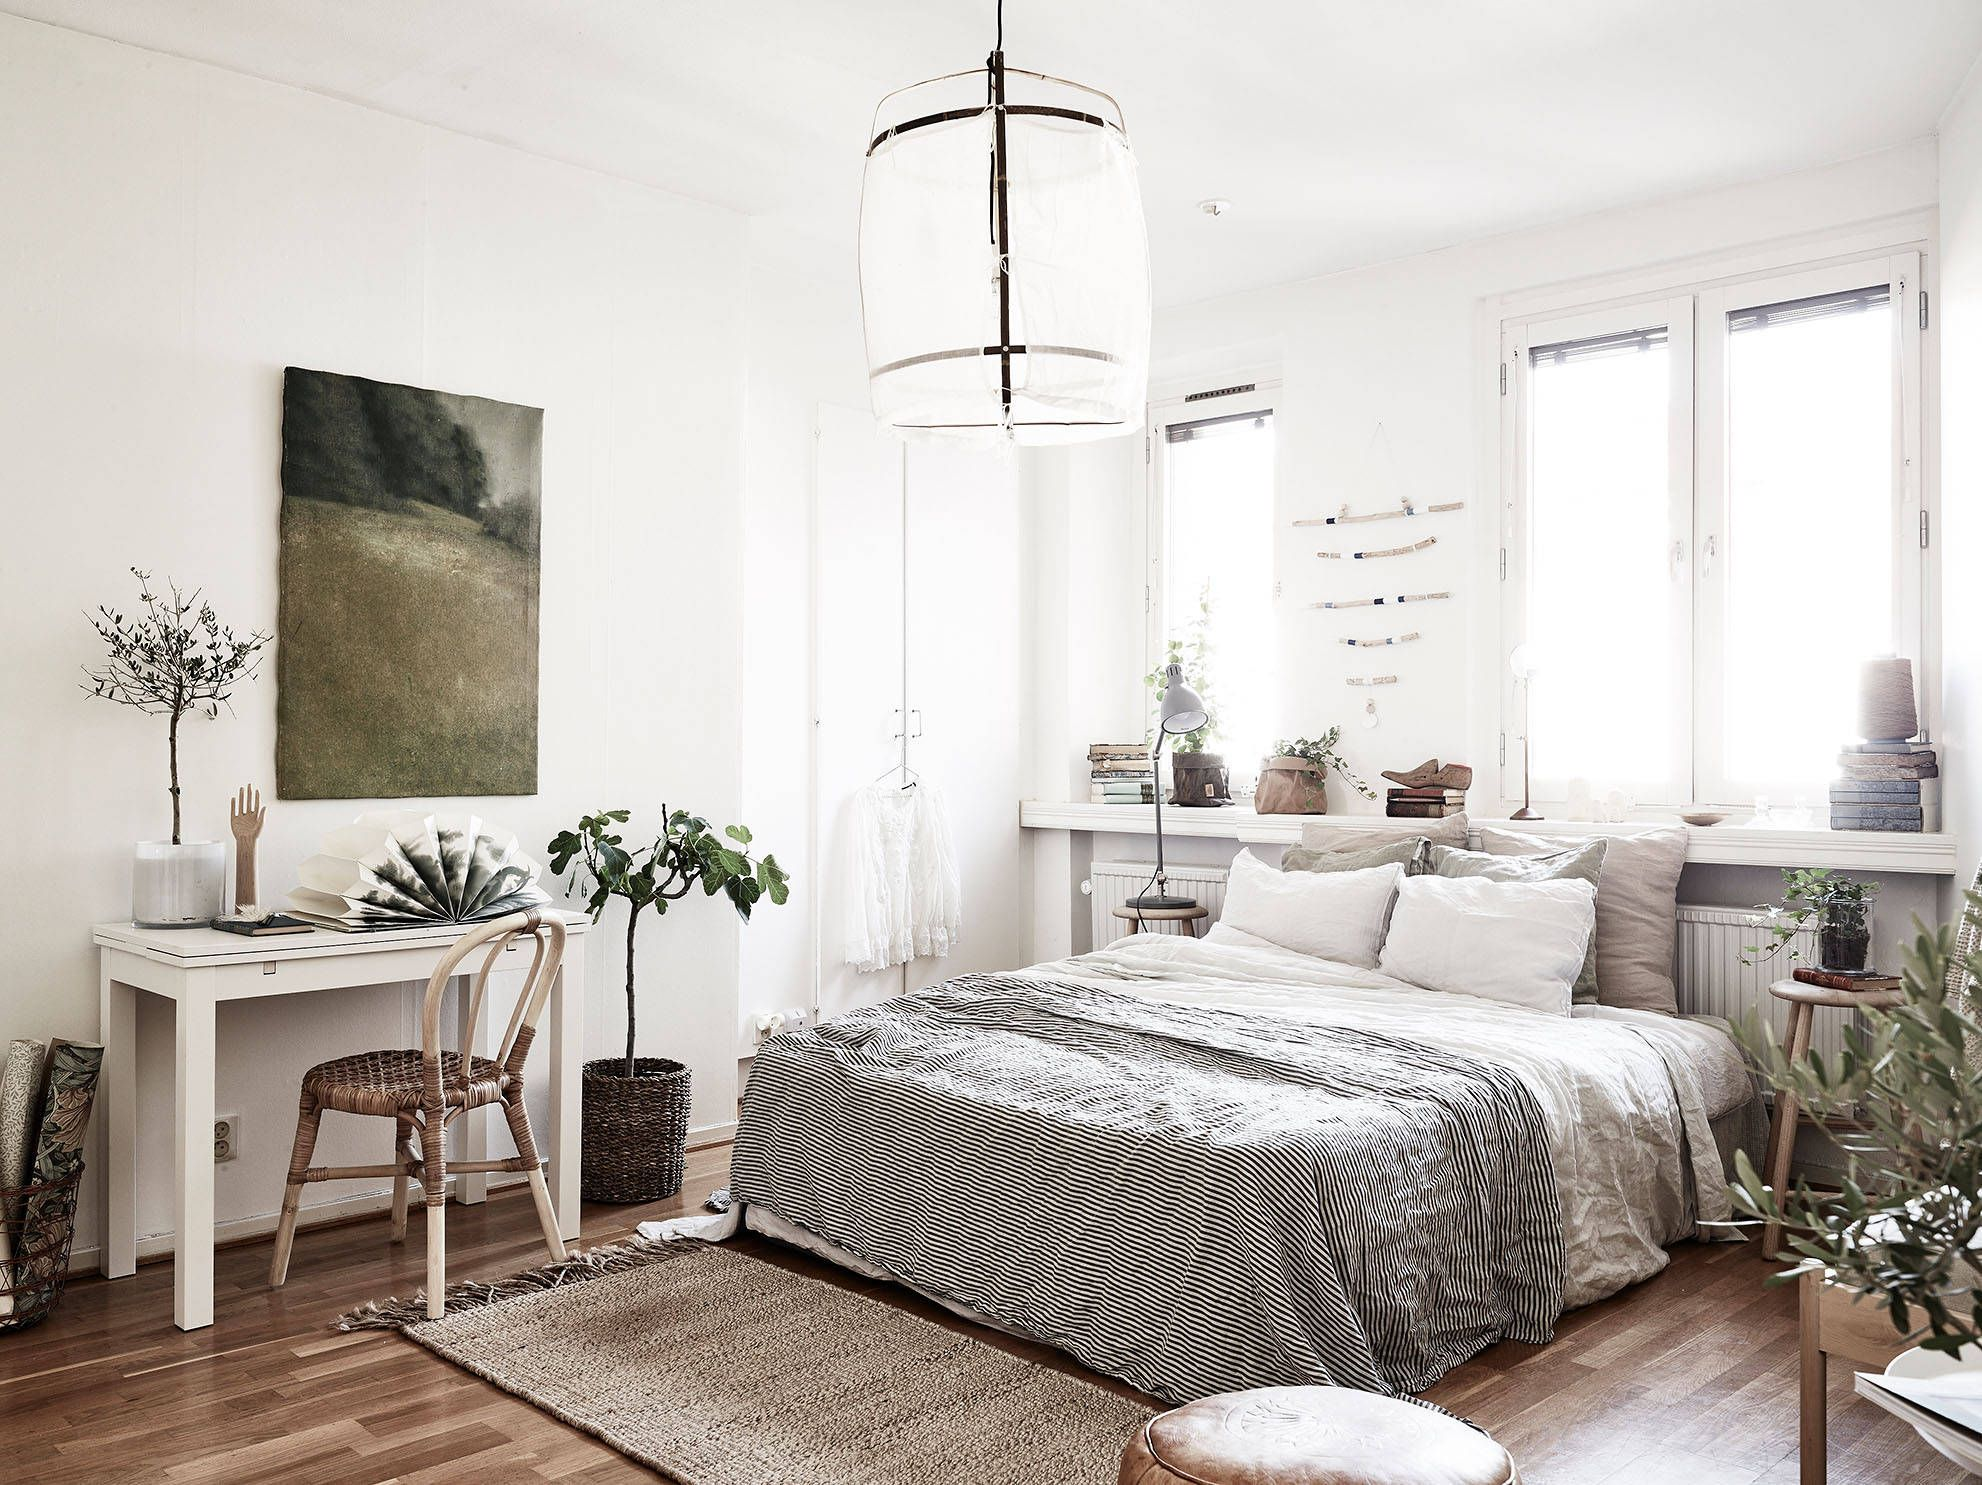 Uber Dreamy Tiny Studio Apartment Daily Dream Decor -6857